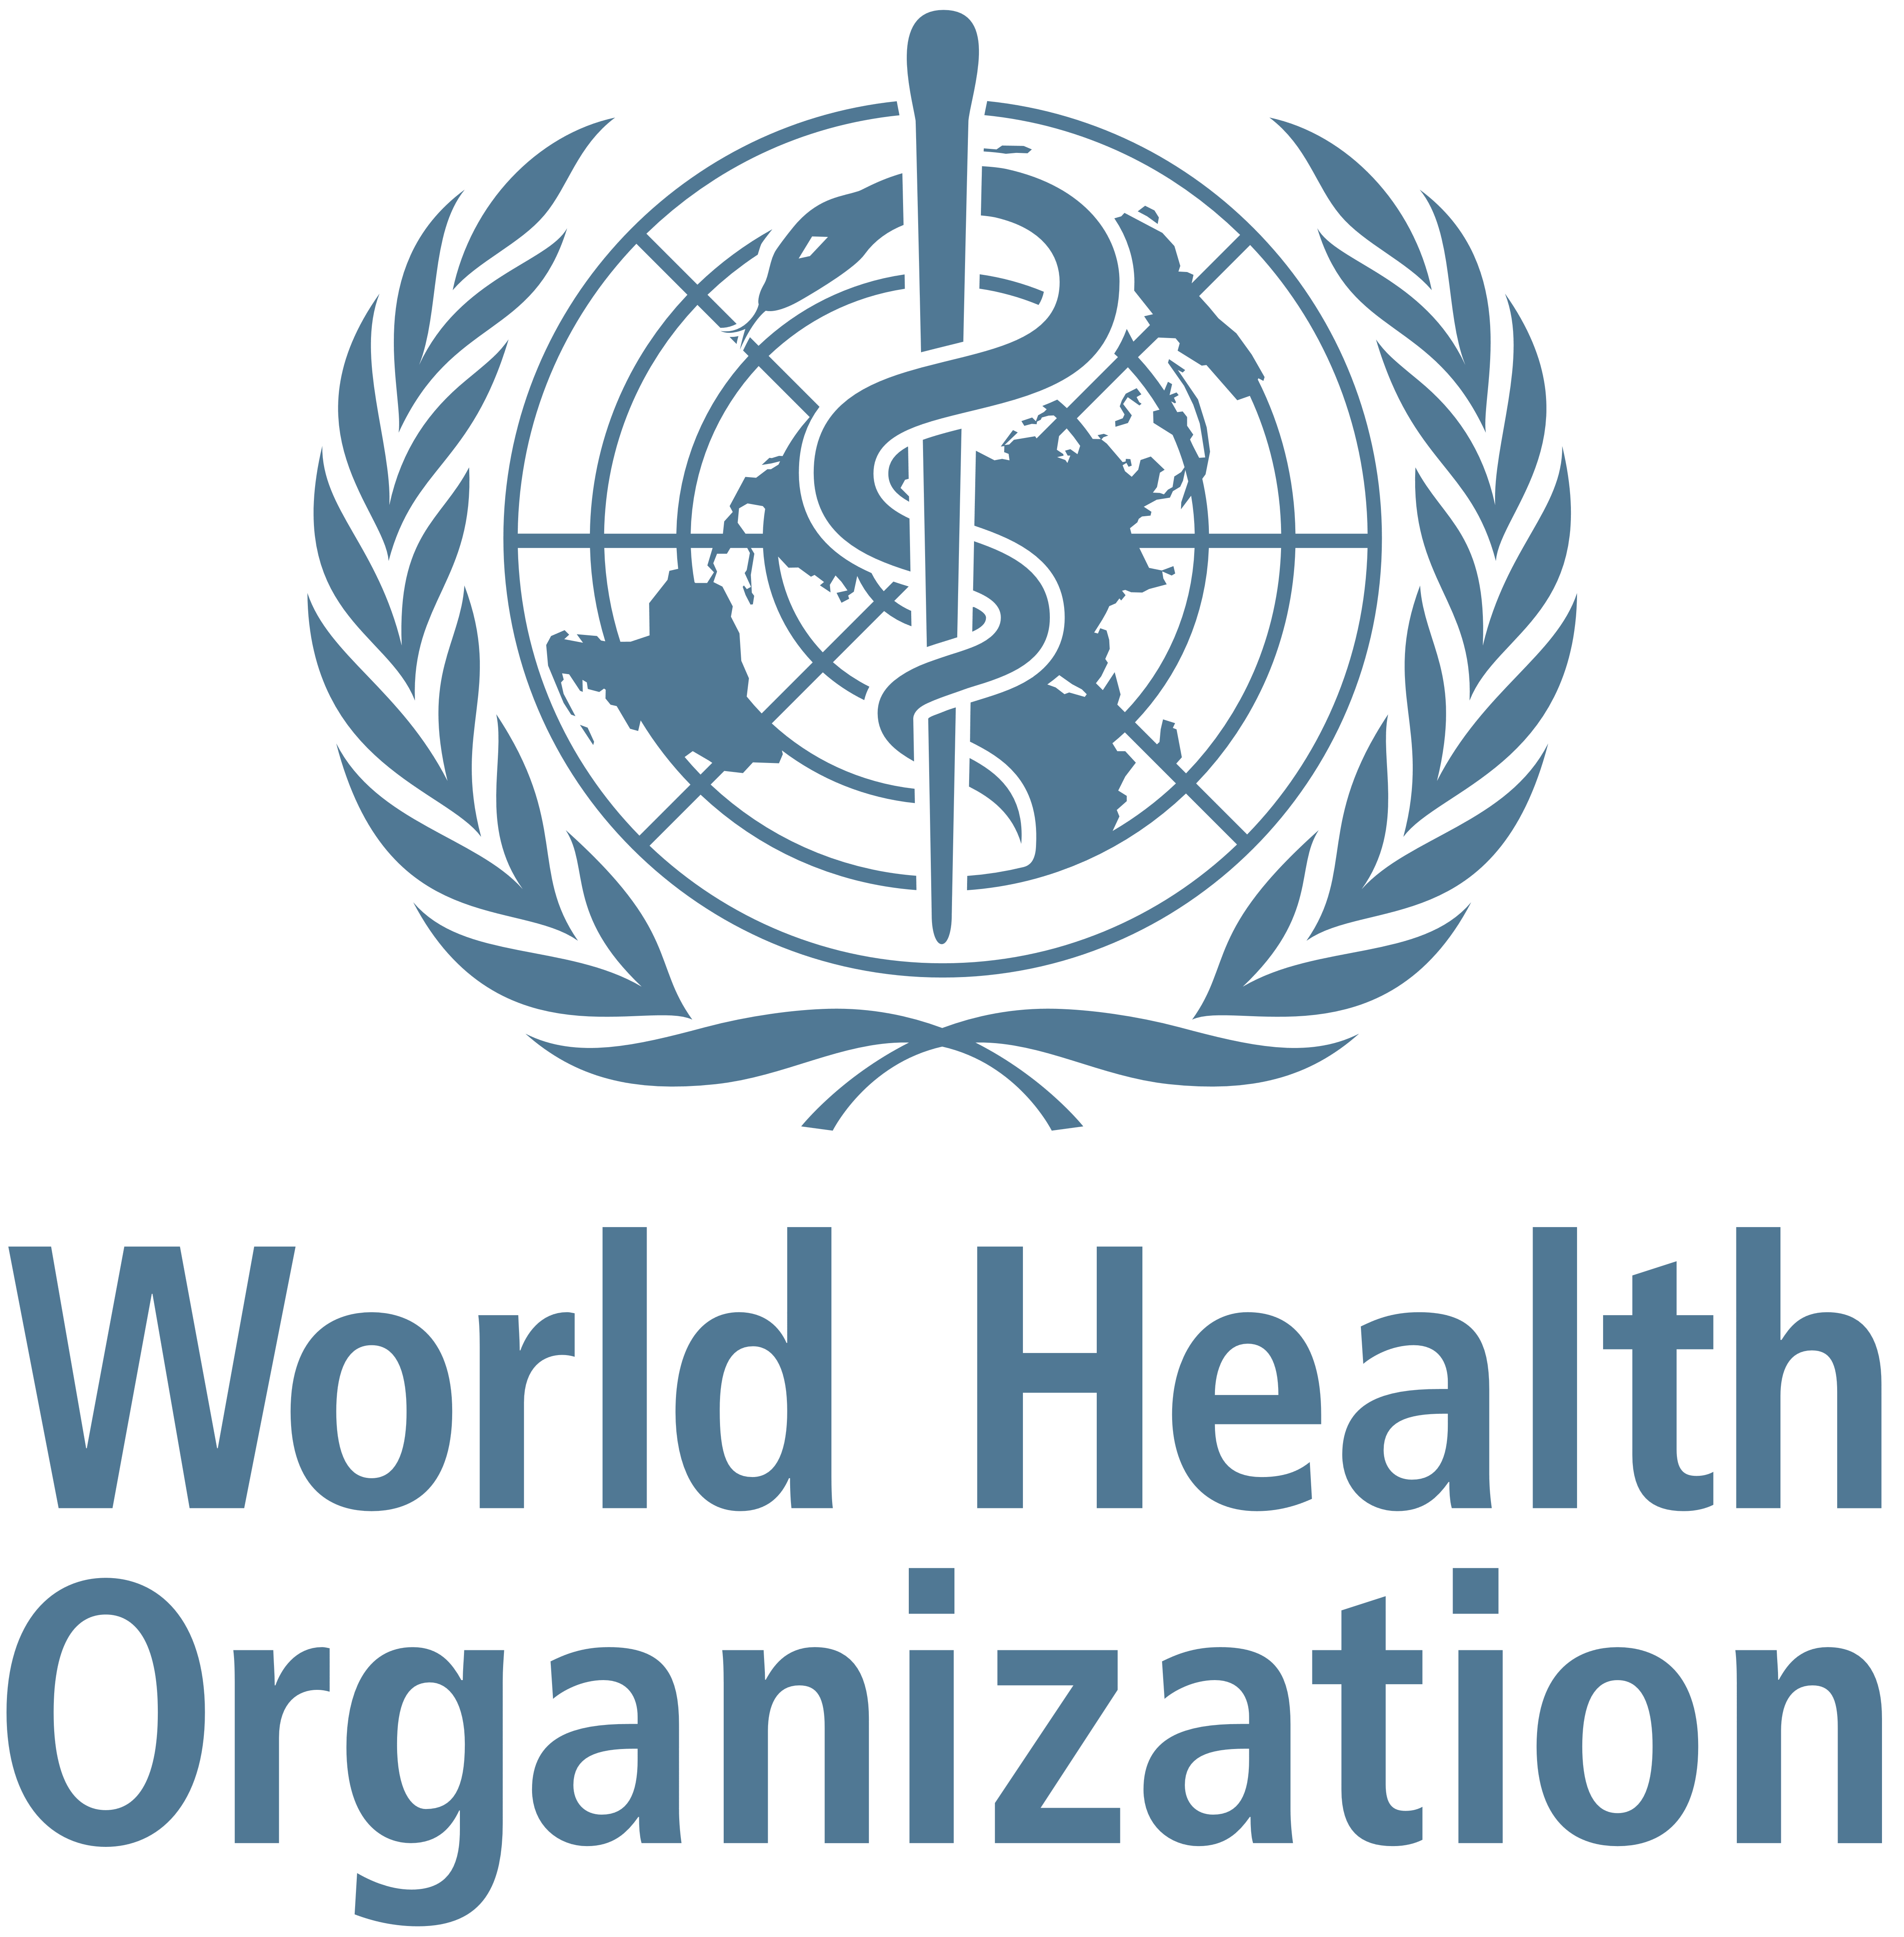 the world health organization Browse, search and watch world health organization videos and more at abcnewscom.